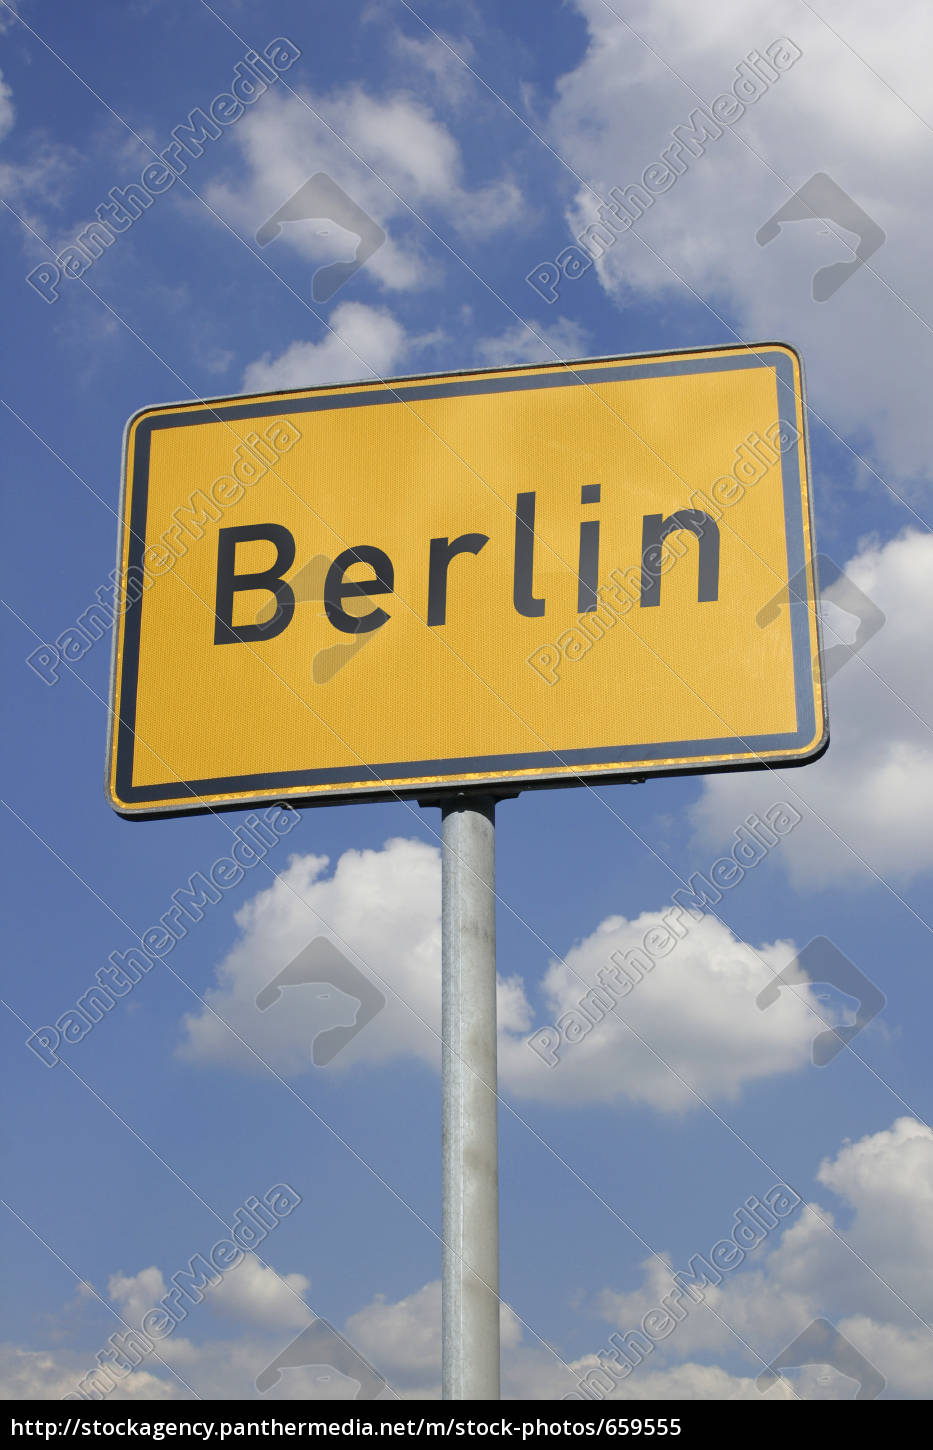 berlin, shield - 659555